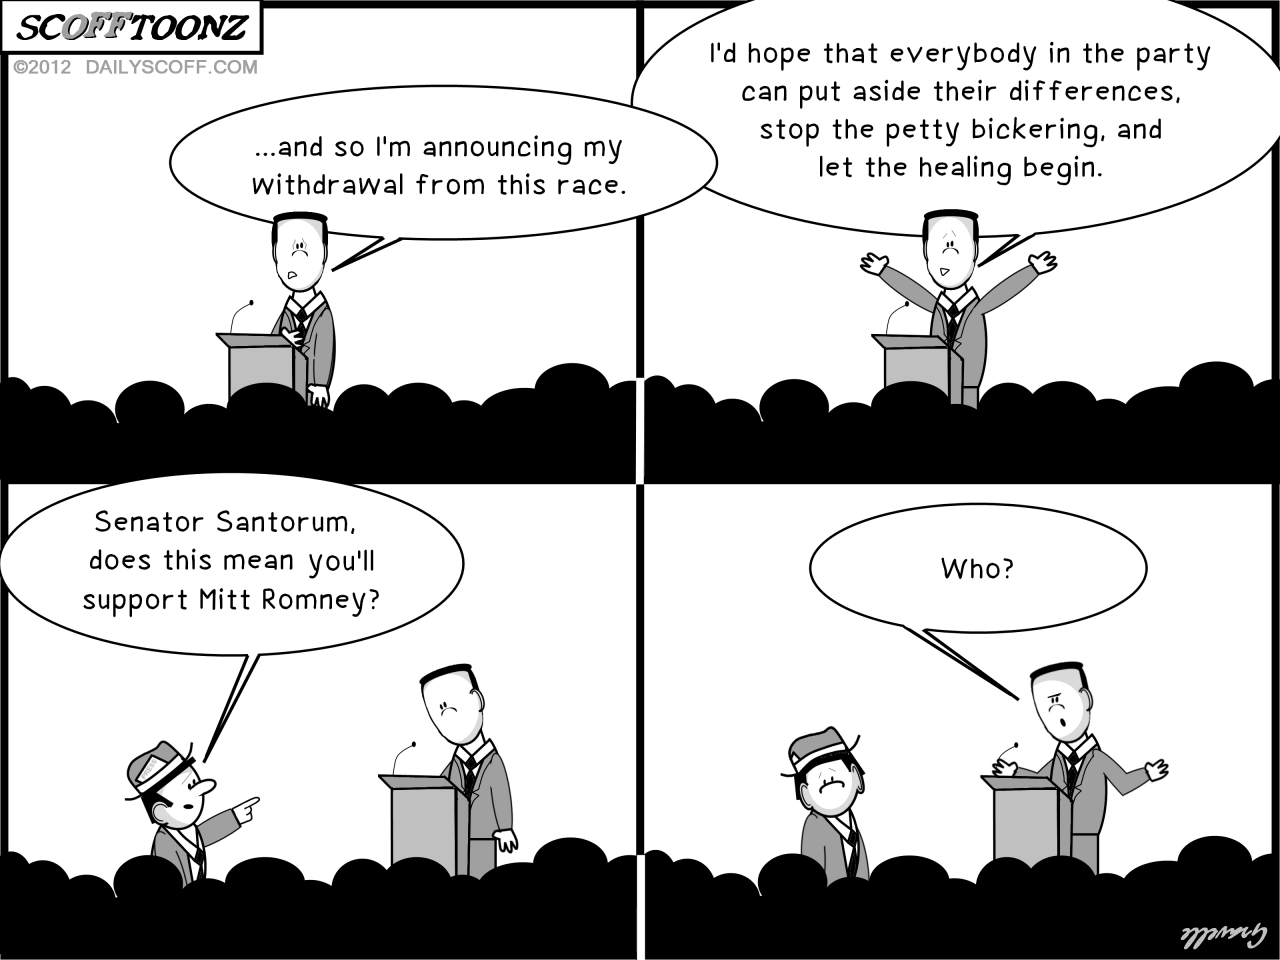 Cartoon: Santorum ignores Romney during concession speech